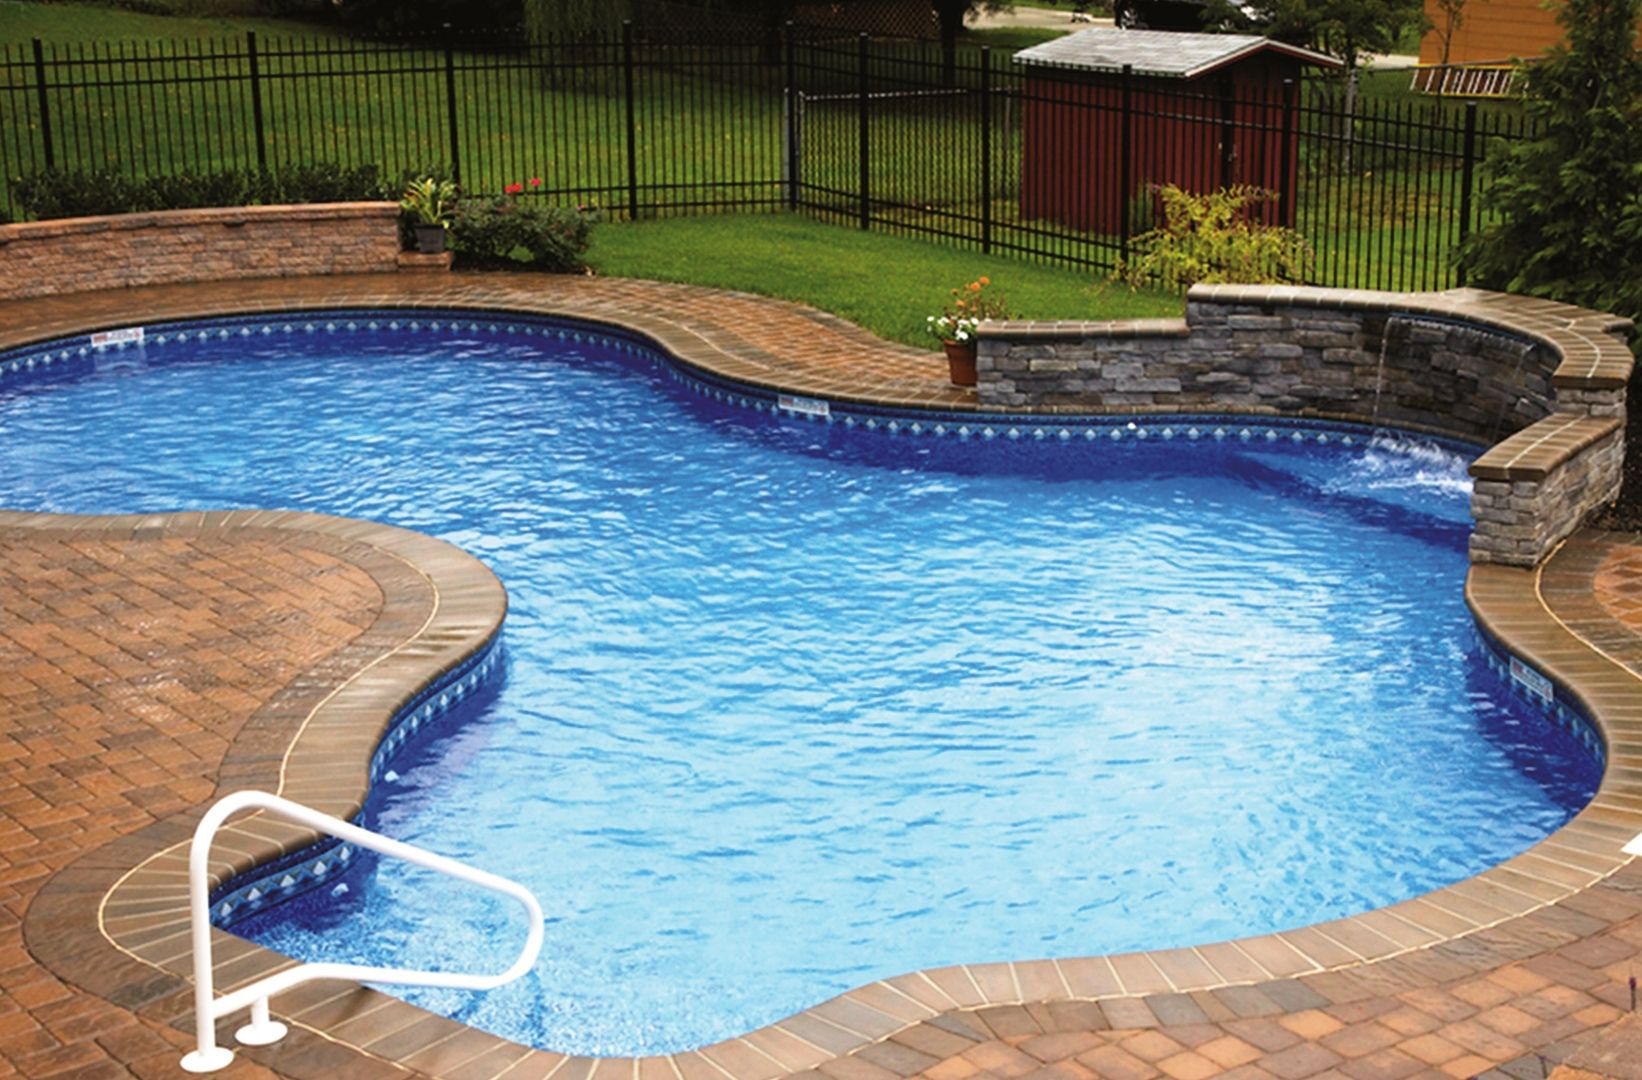 Back yard swimming pool ideas swimming pool design - Swimming pools for small backyards ...